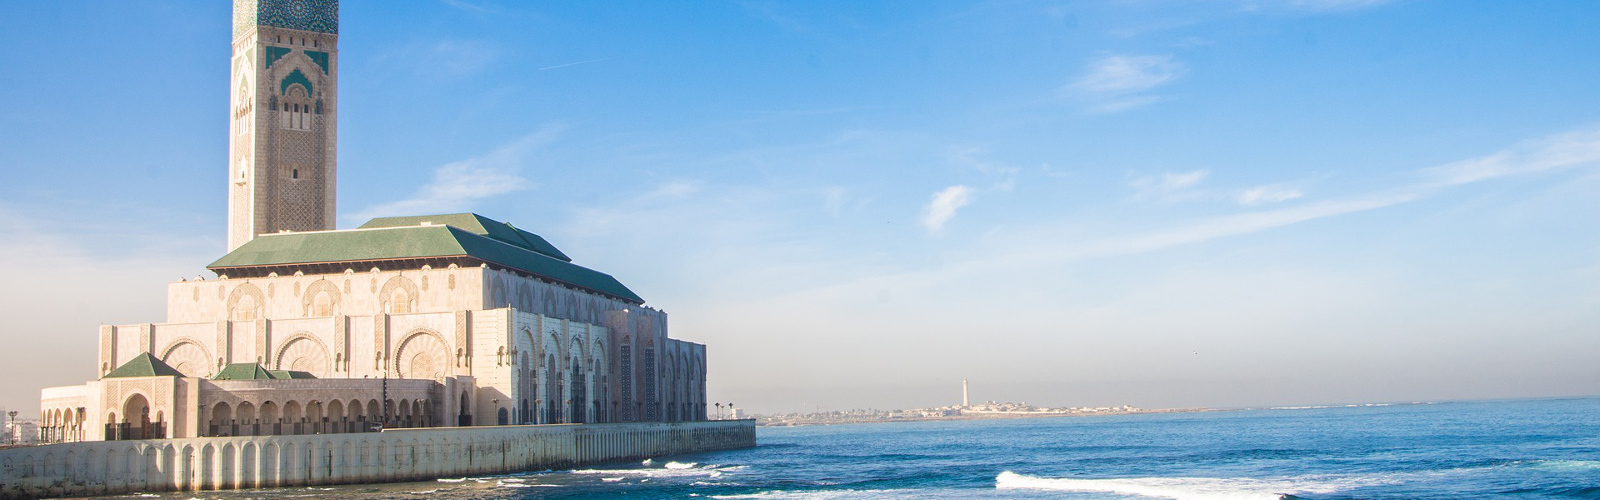 Transfers to and from Casablanca Airport (CMN) with Sixt